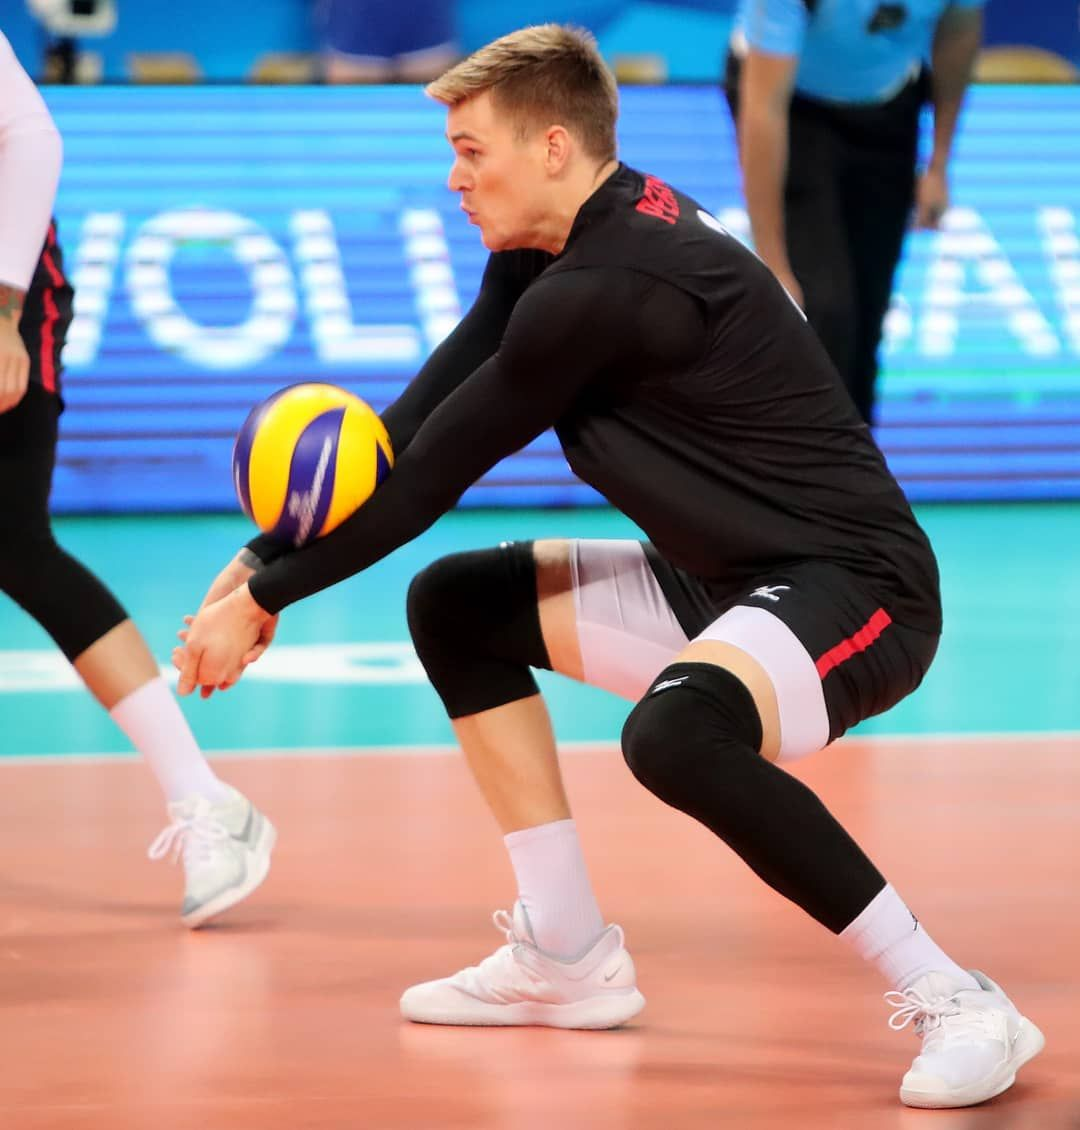 The Canadian Captain John Perrin 29 Yo 2 01m Wing Spiker Jersey 2 He Had Passed Through Many Volley American Games Rio Olympics World Championship